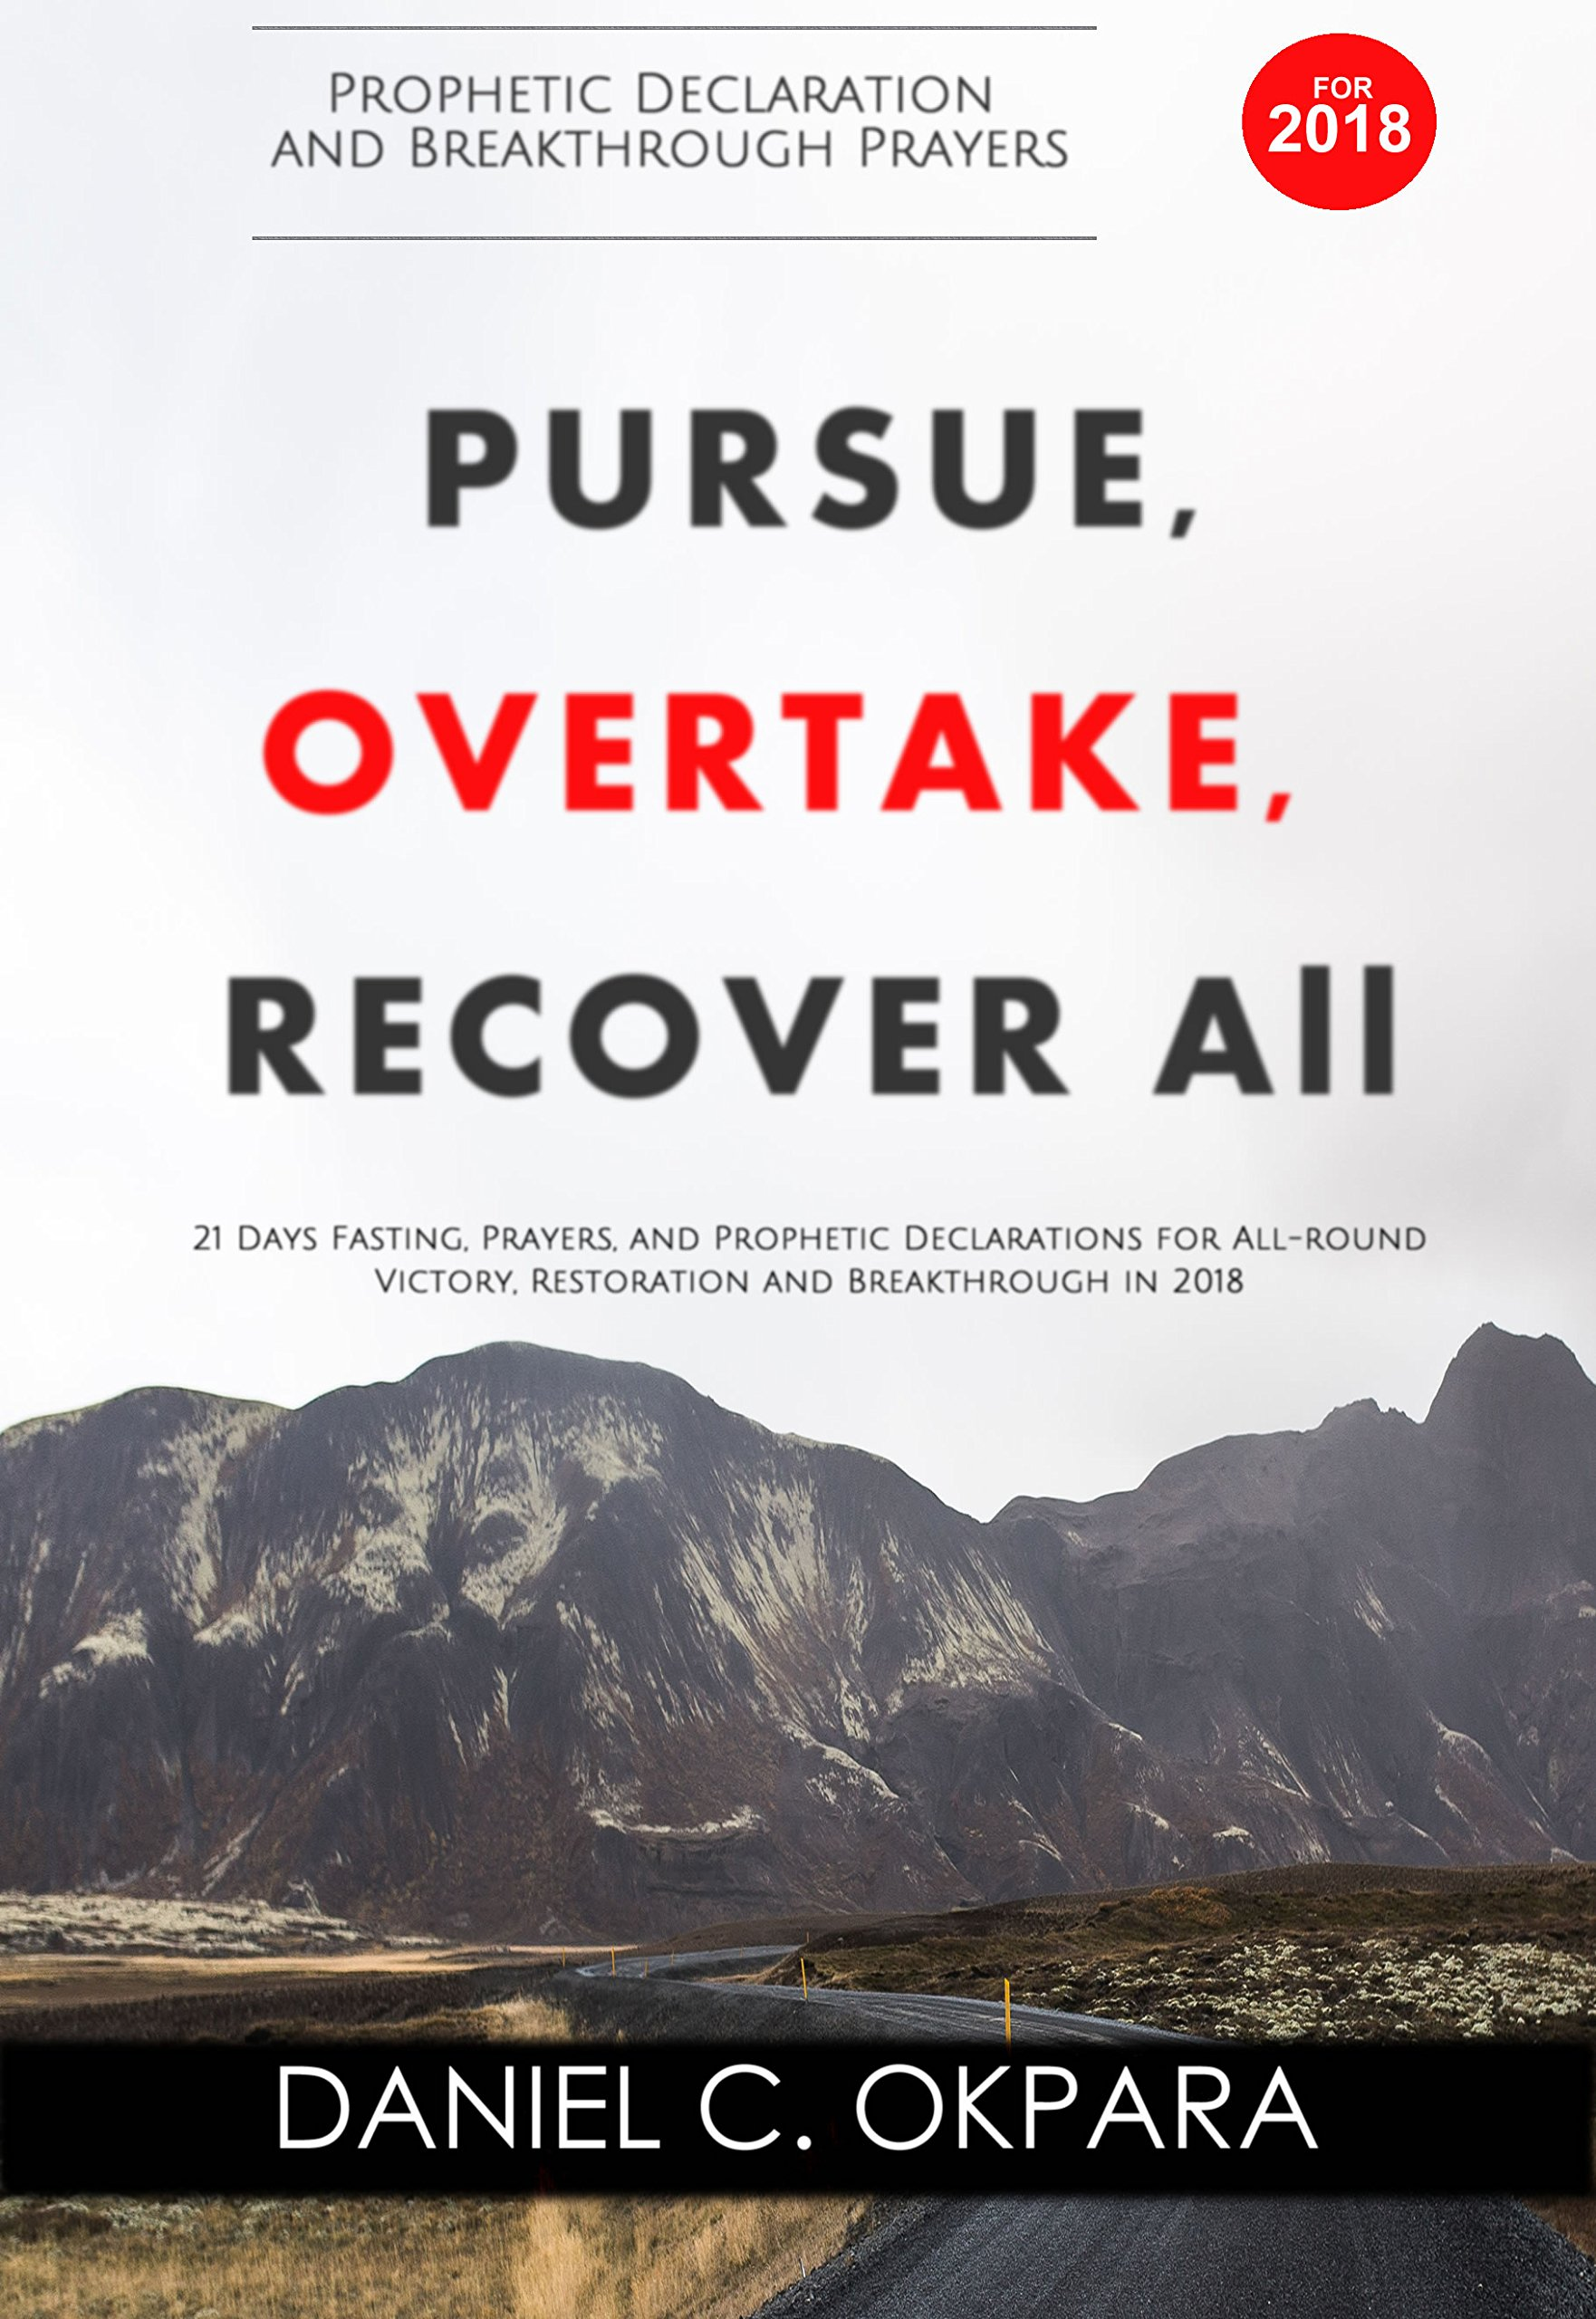 Prophetic Declaration And Breakthrough Prayers For 2018   Pursue Overtake Recover All  English Edition